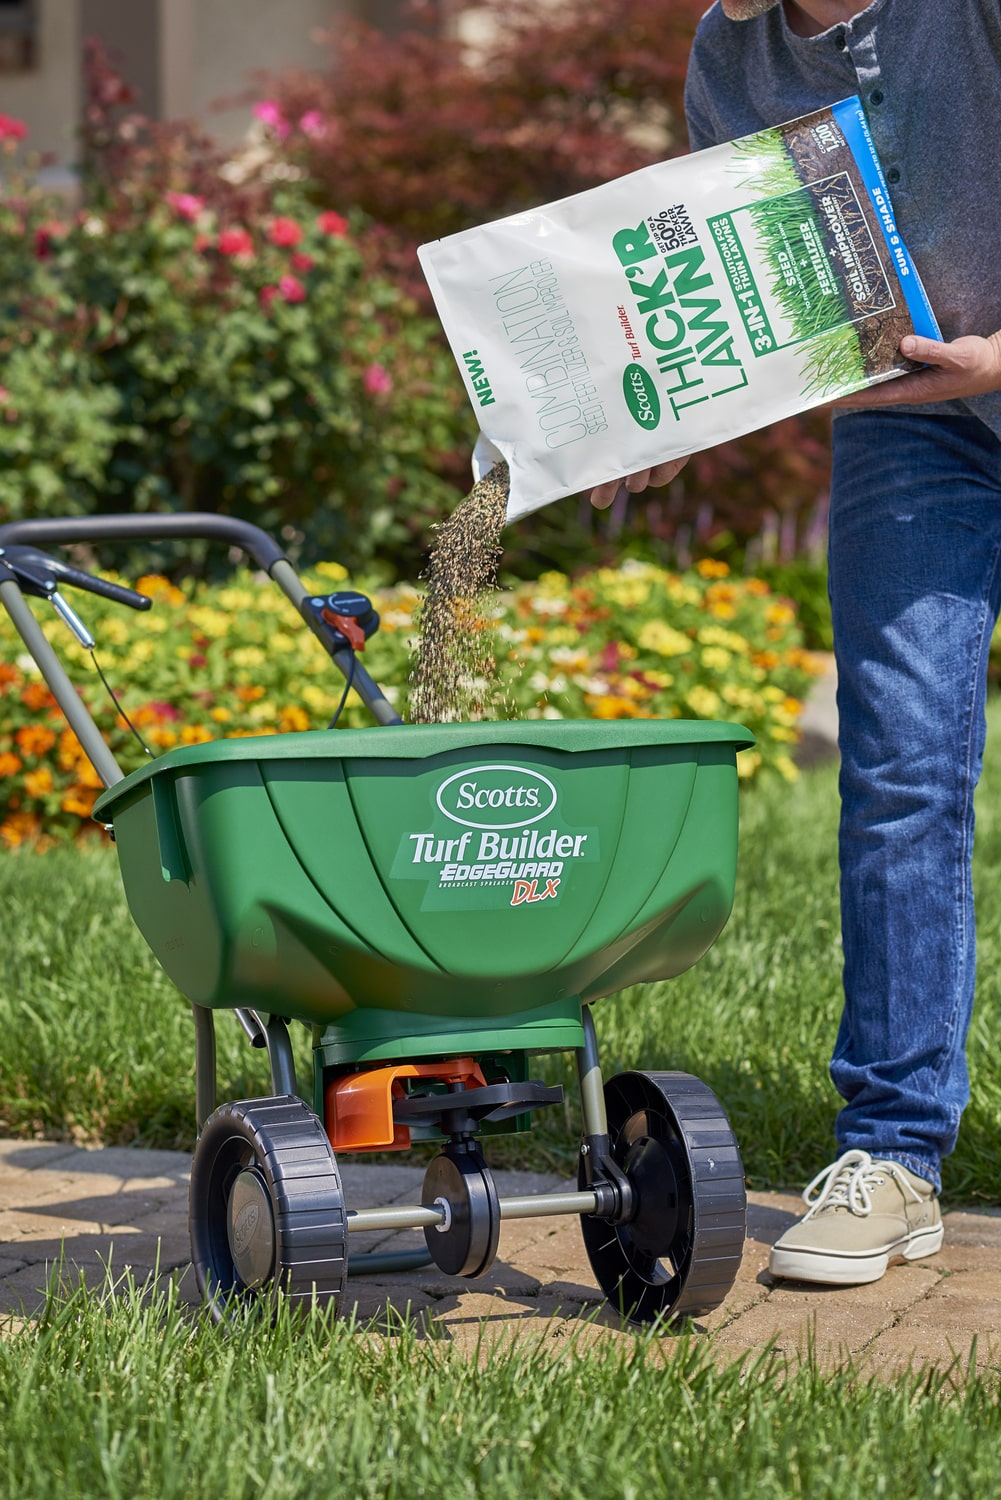 Scotts Lawn Products Coupons